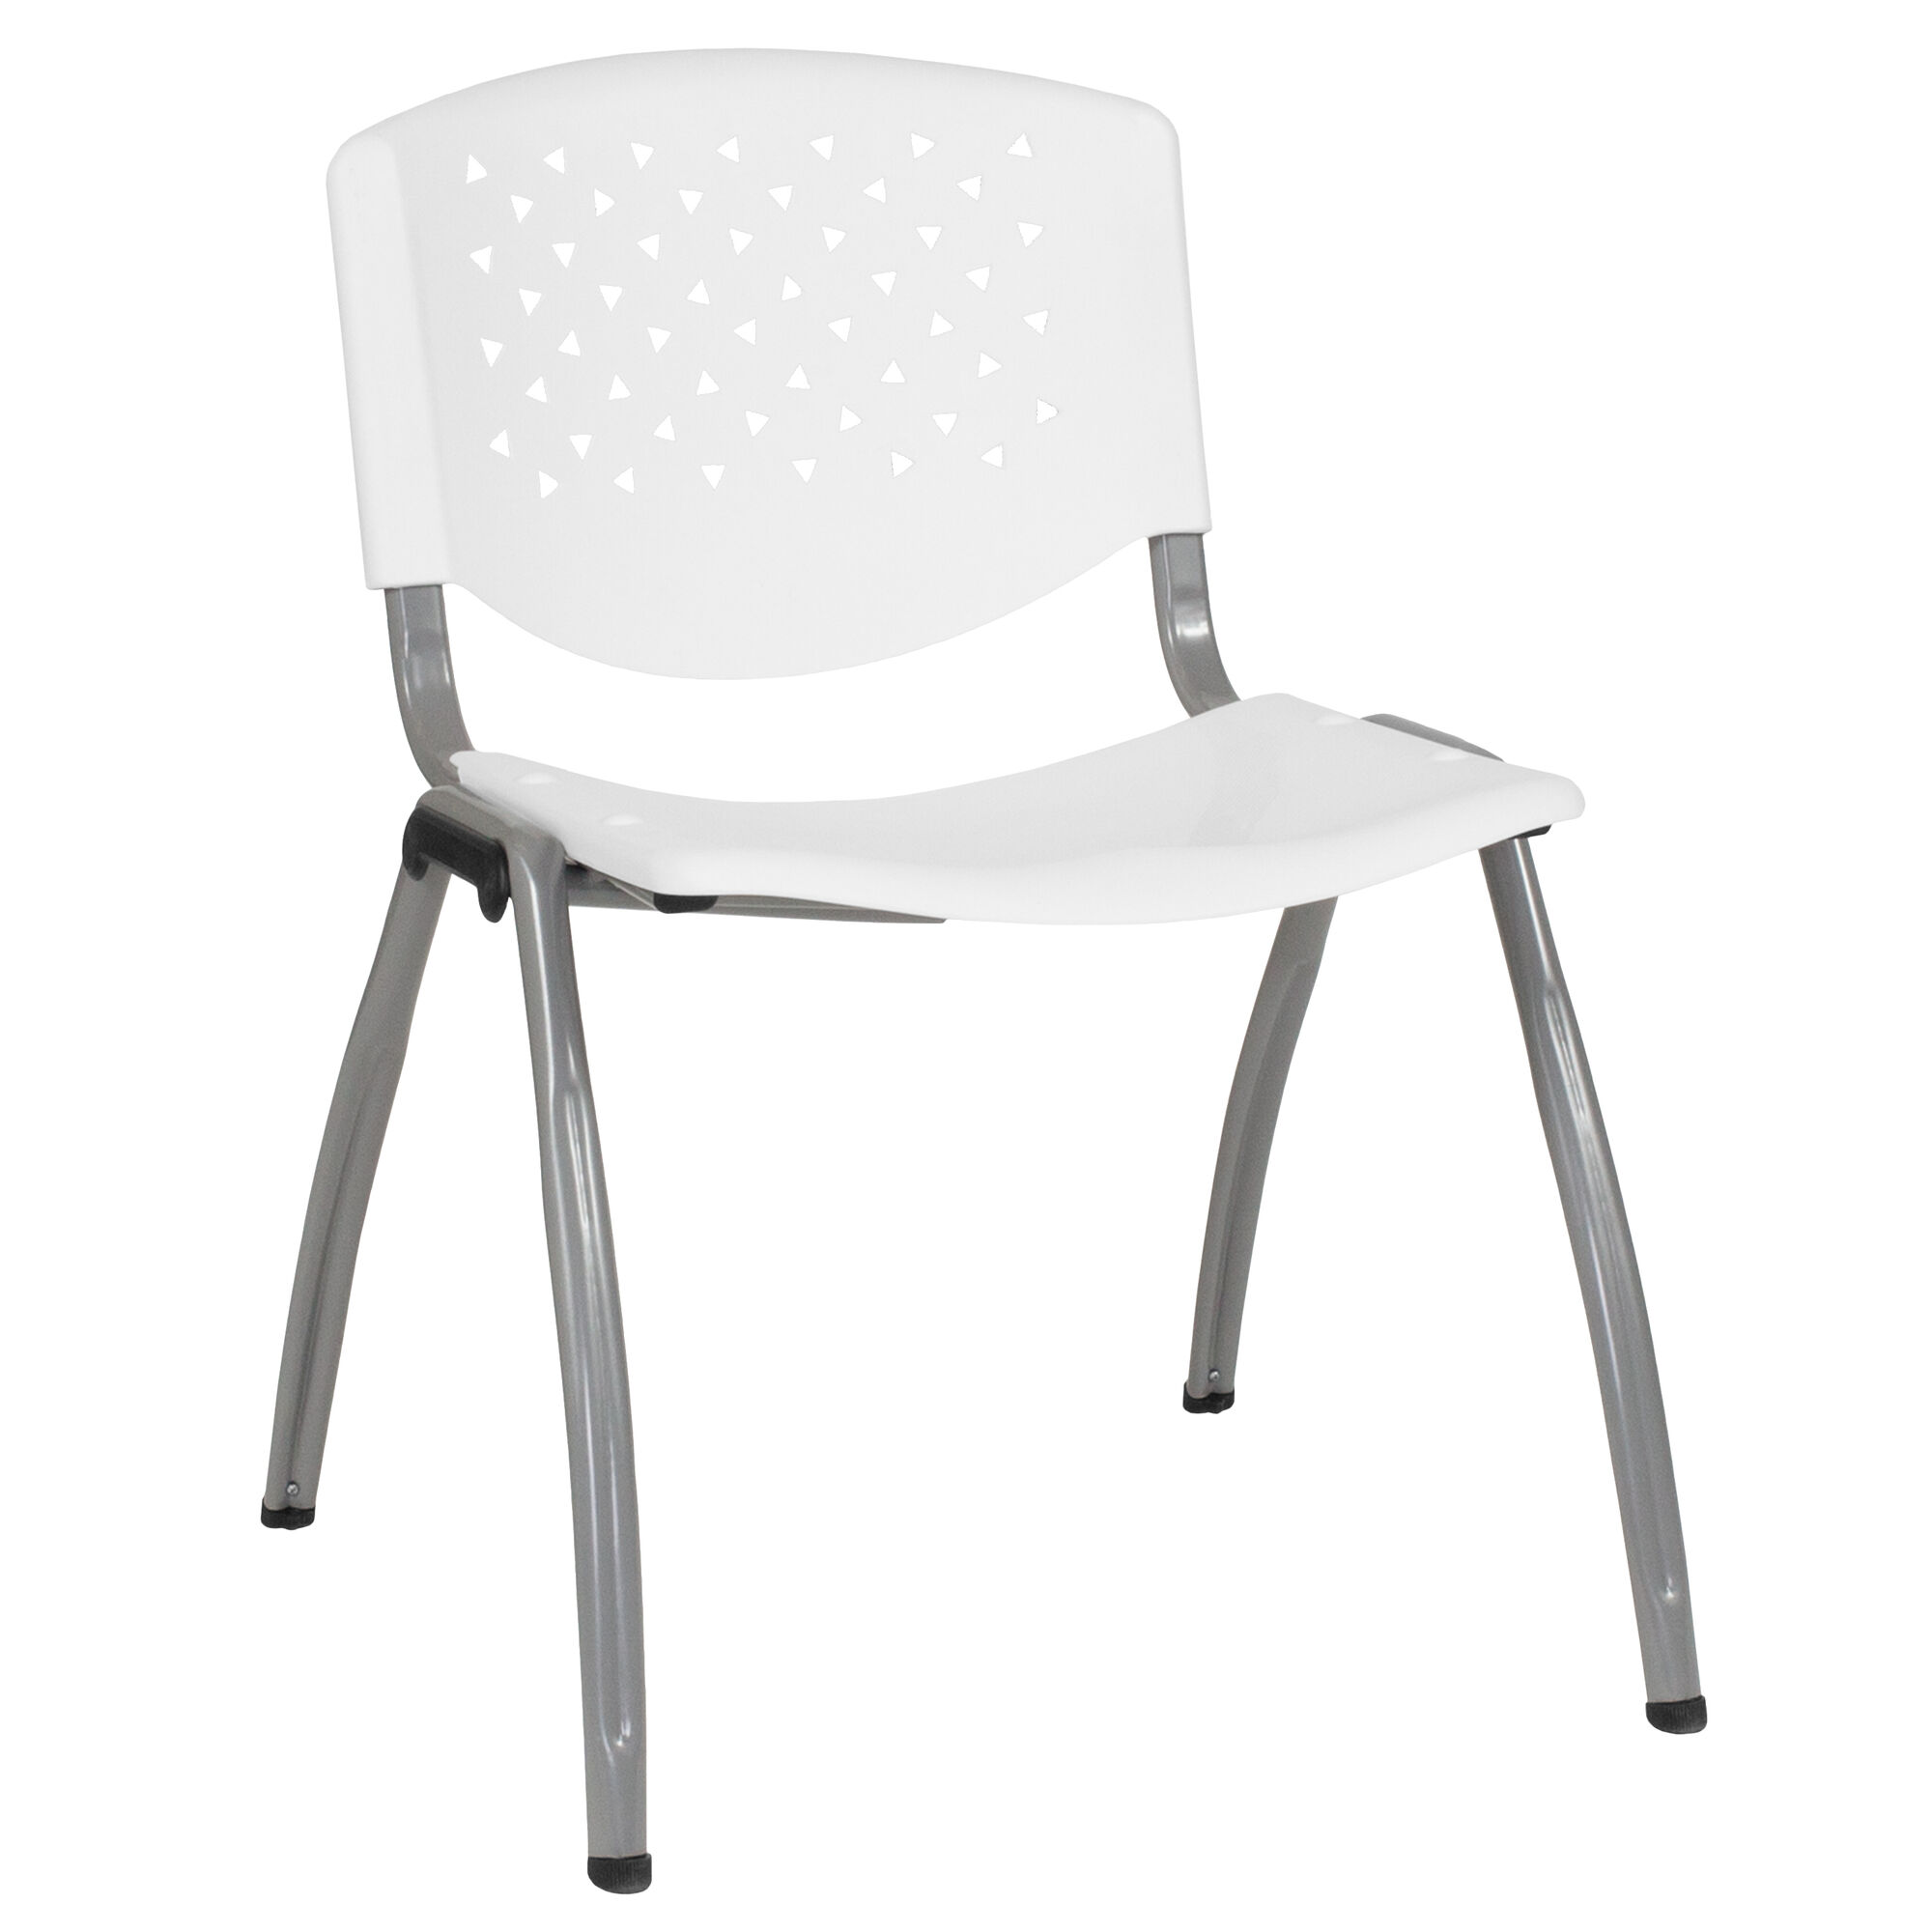 Hercules Series 880 Lb Capacity White Plastic Stack Chair With Anium Gray Powder Coated Frame